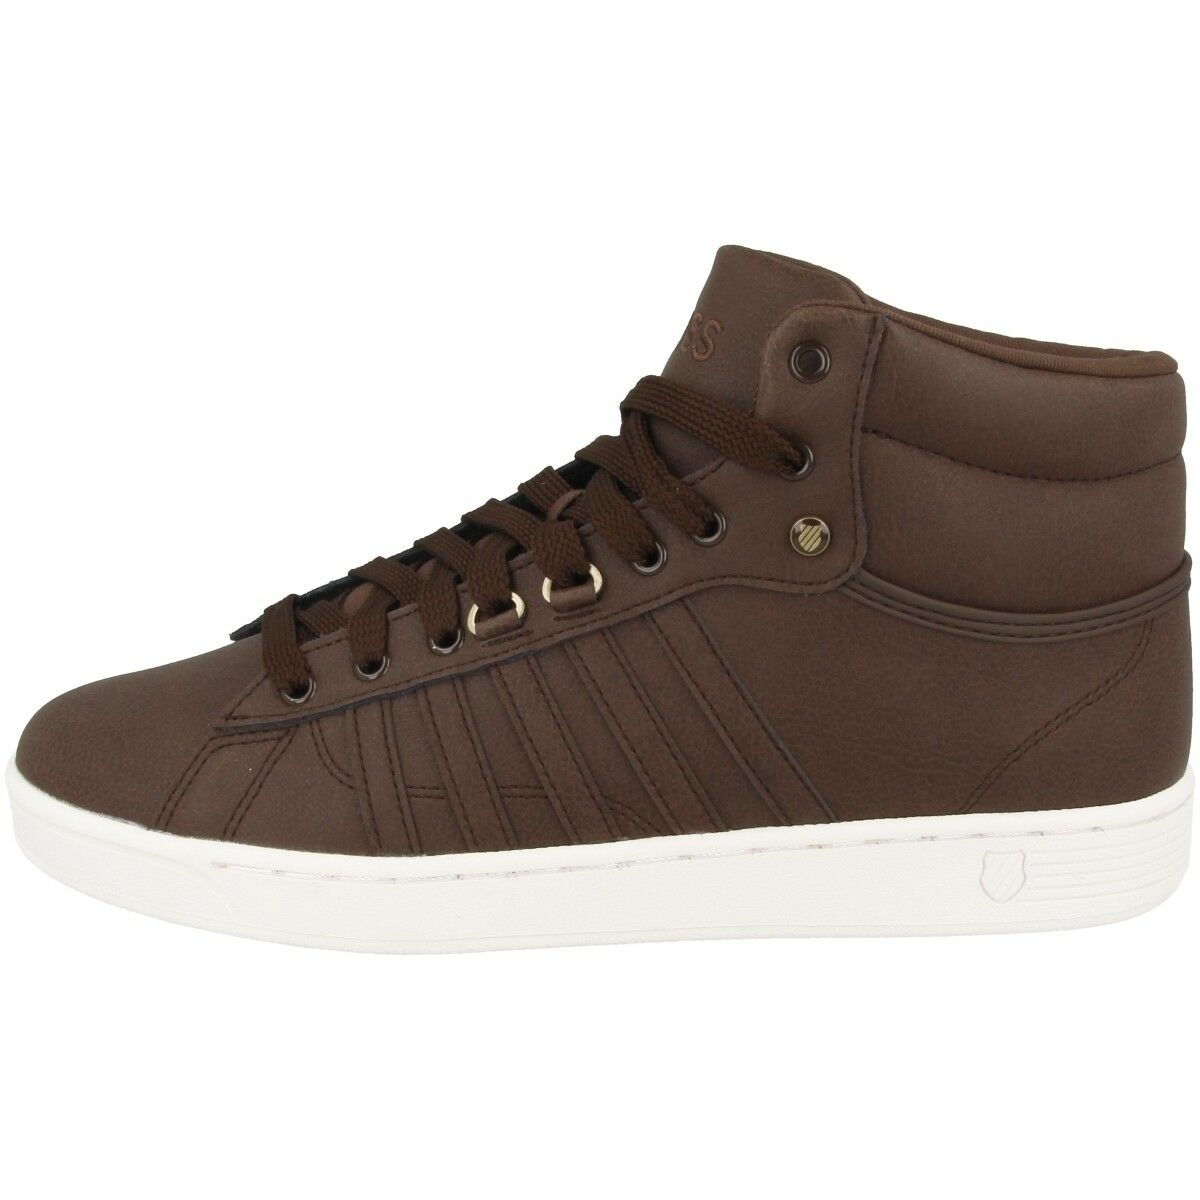 K-Swiss Hoke Mid CMF Men Schuhe Herren High Top Turnschuhe chocolate 05464-296